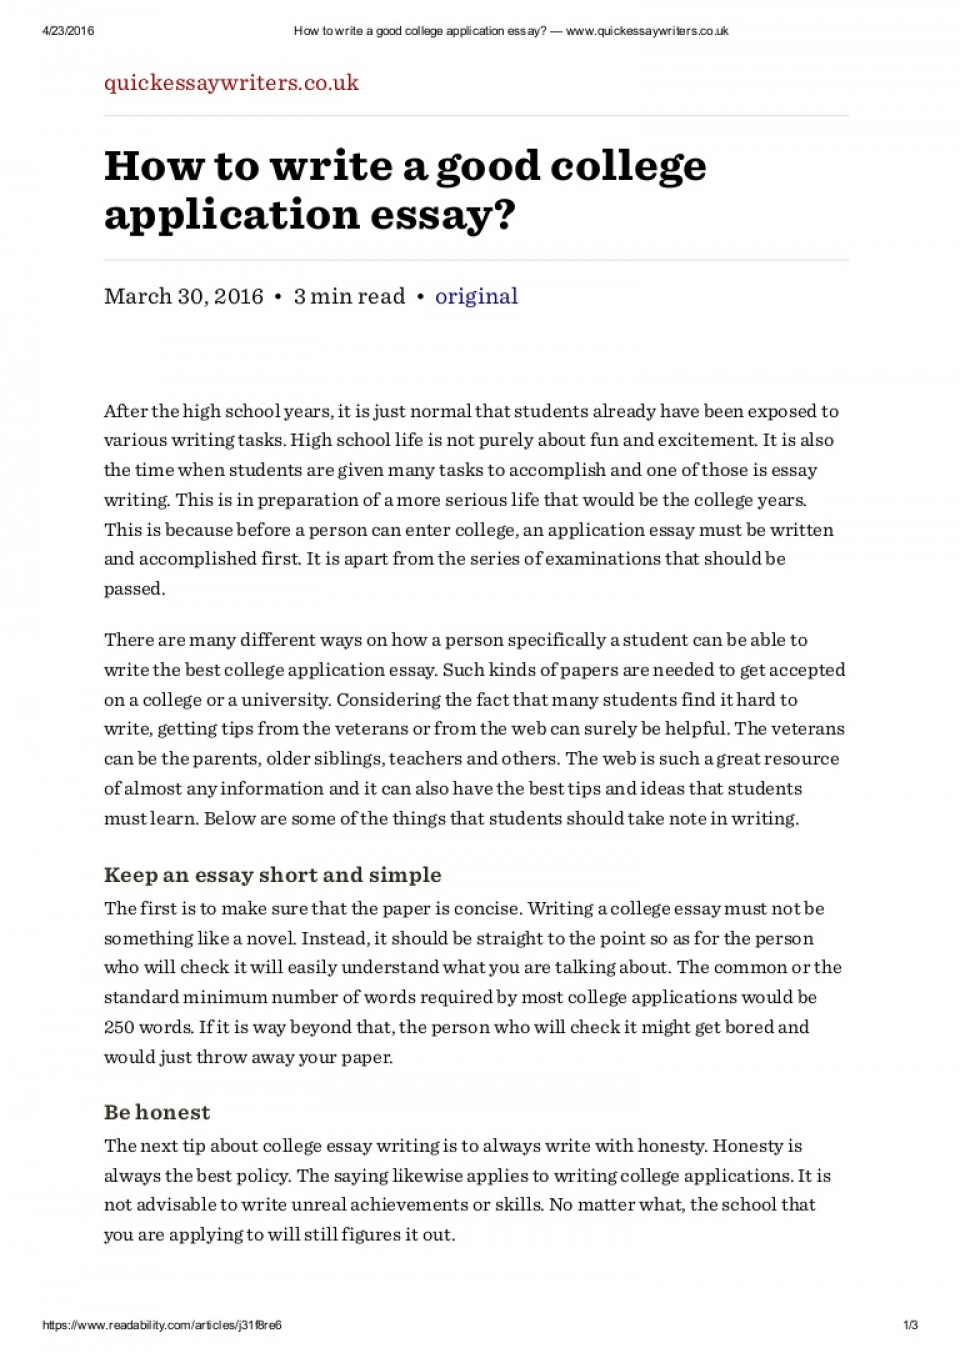 009 Howtowriteagoodcollegeapplicationessaywww Thumbnail Essay Example Writing College Rare A Application About Yourself Examples How To Write Term Paper Outline Introduction 960